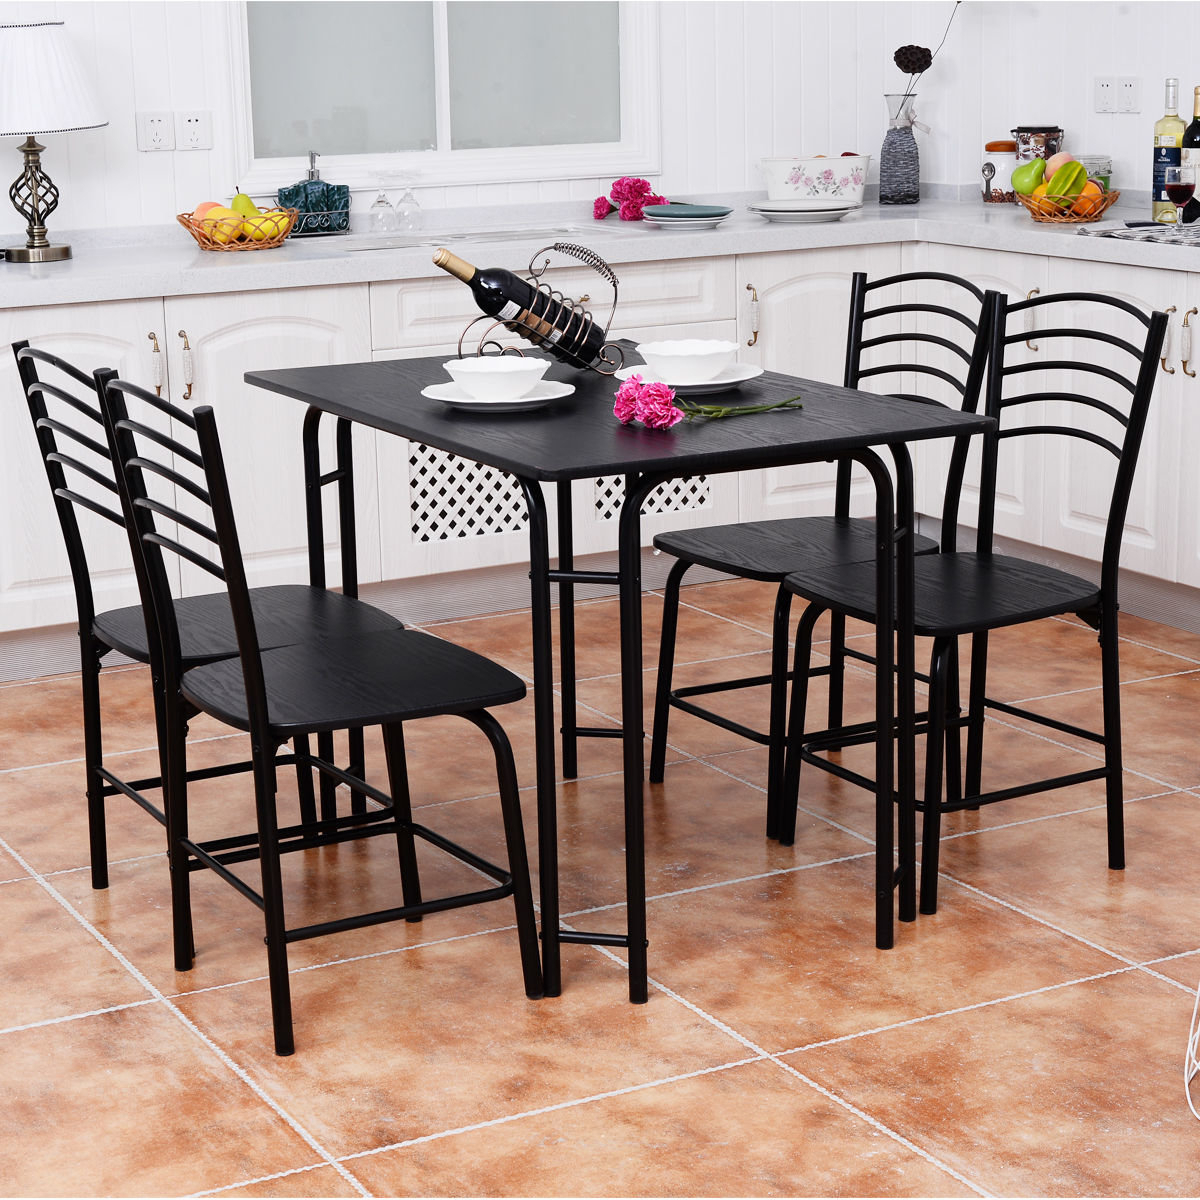 Details About Winston Porter Ephraim 5 Piece Dining Set With Most Current Ephraim 5 Piece Dining Sets (View 5 of 20)